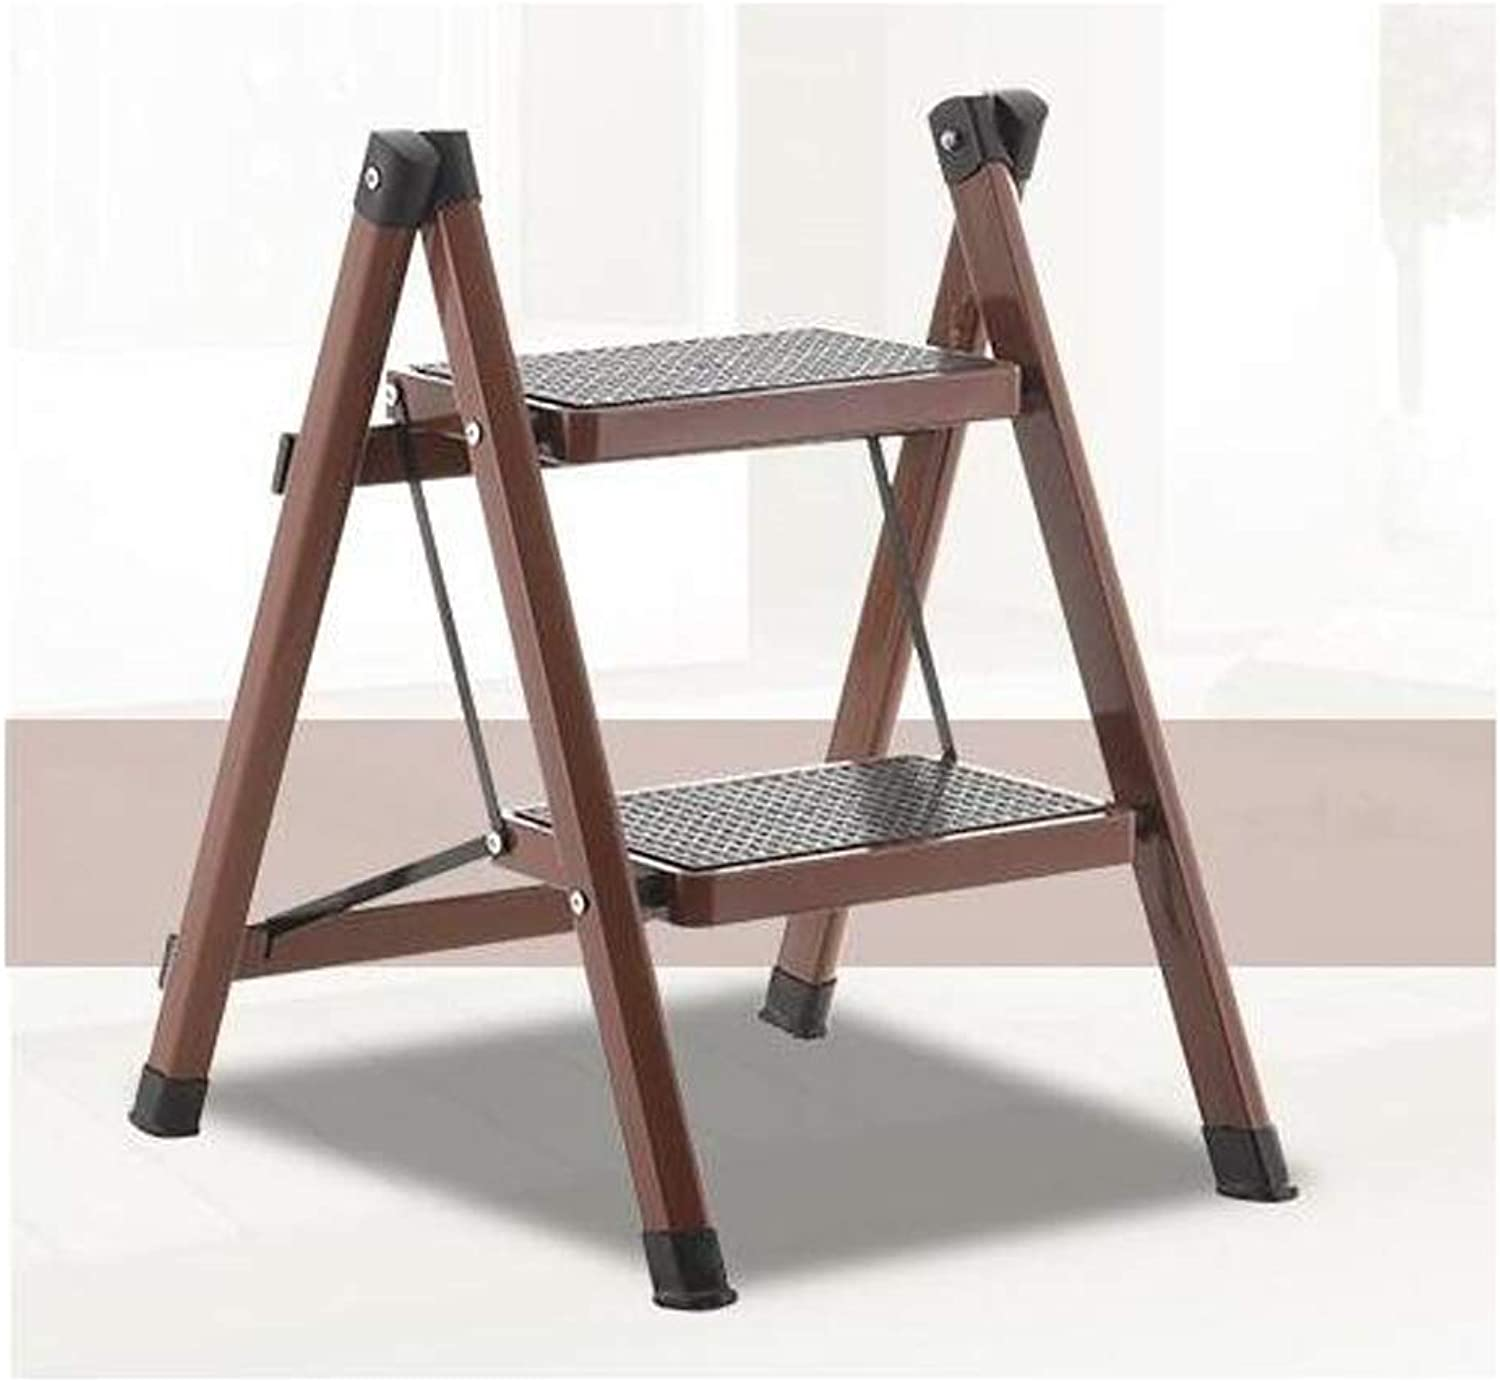 HBJP Ladder Stool Kitchen Ladder Home Folding Ladder Stool Dormitory Upper Stairs Multi-Function Small Hanging Ladder Two Steps Horse Stool Two-Step Ladder Staircase Stool (color   Brown)